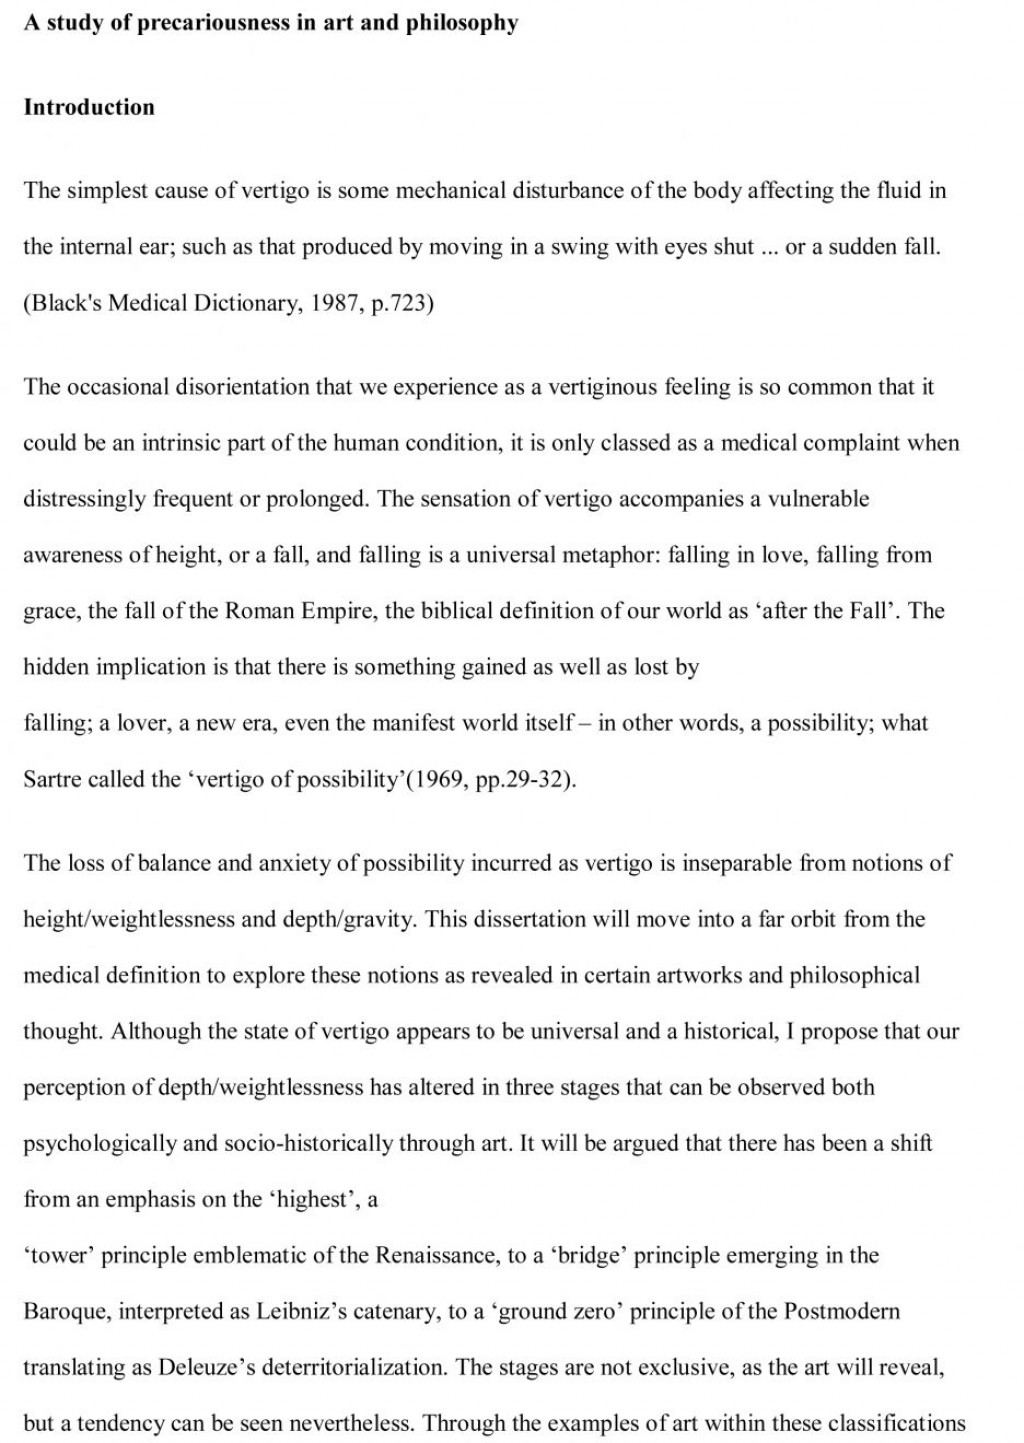 016 Hard Work Essay The Key Success Art Coursework Sample Essays On In Hindi Is To Wikipedia Pays Off Brings Students Life Always Role Of And Dedication 936x1319 Wonderful Pdf Writing Large